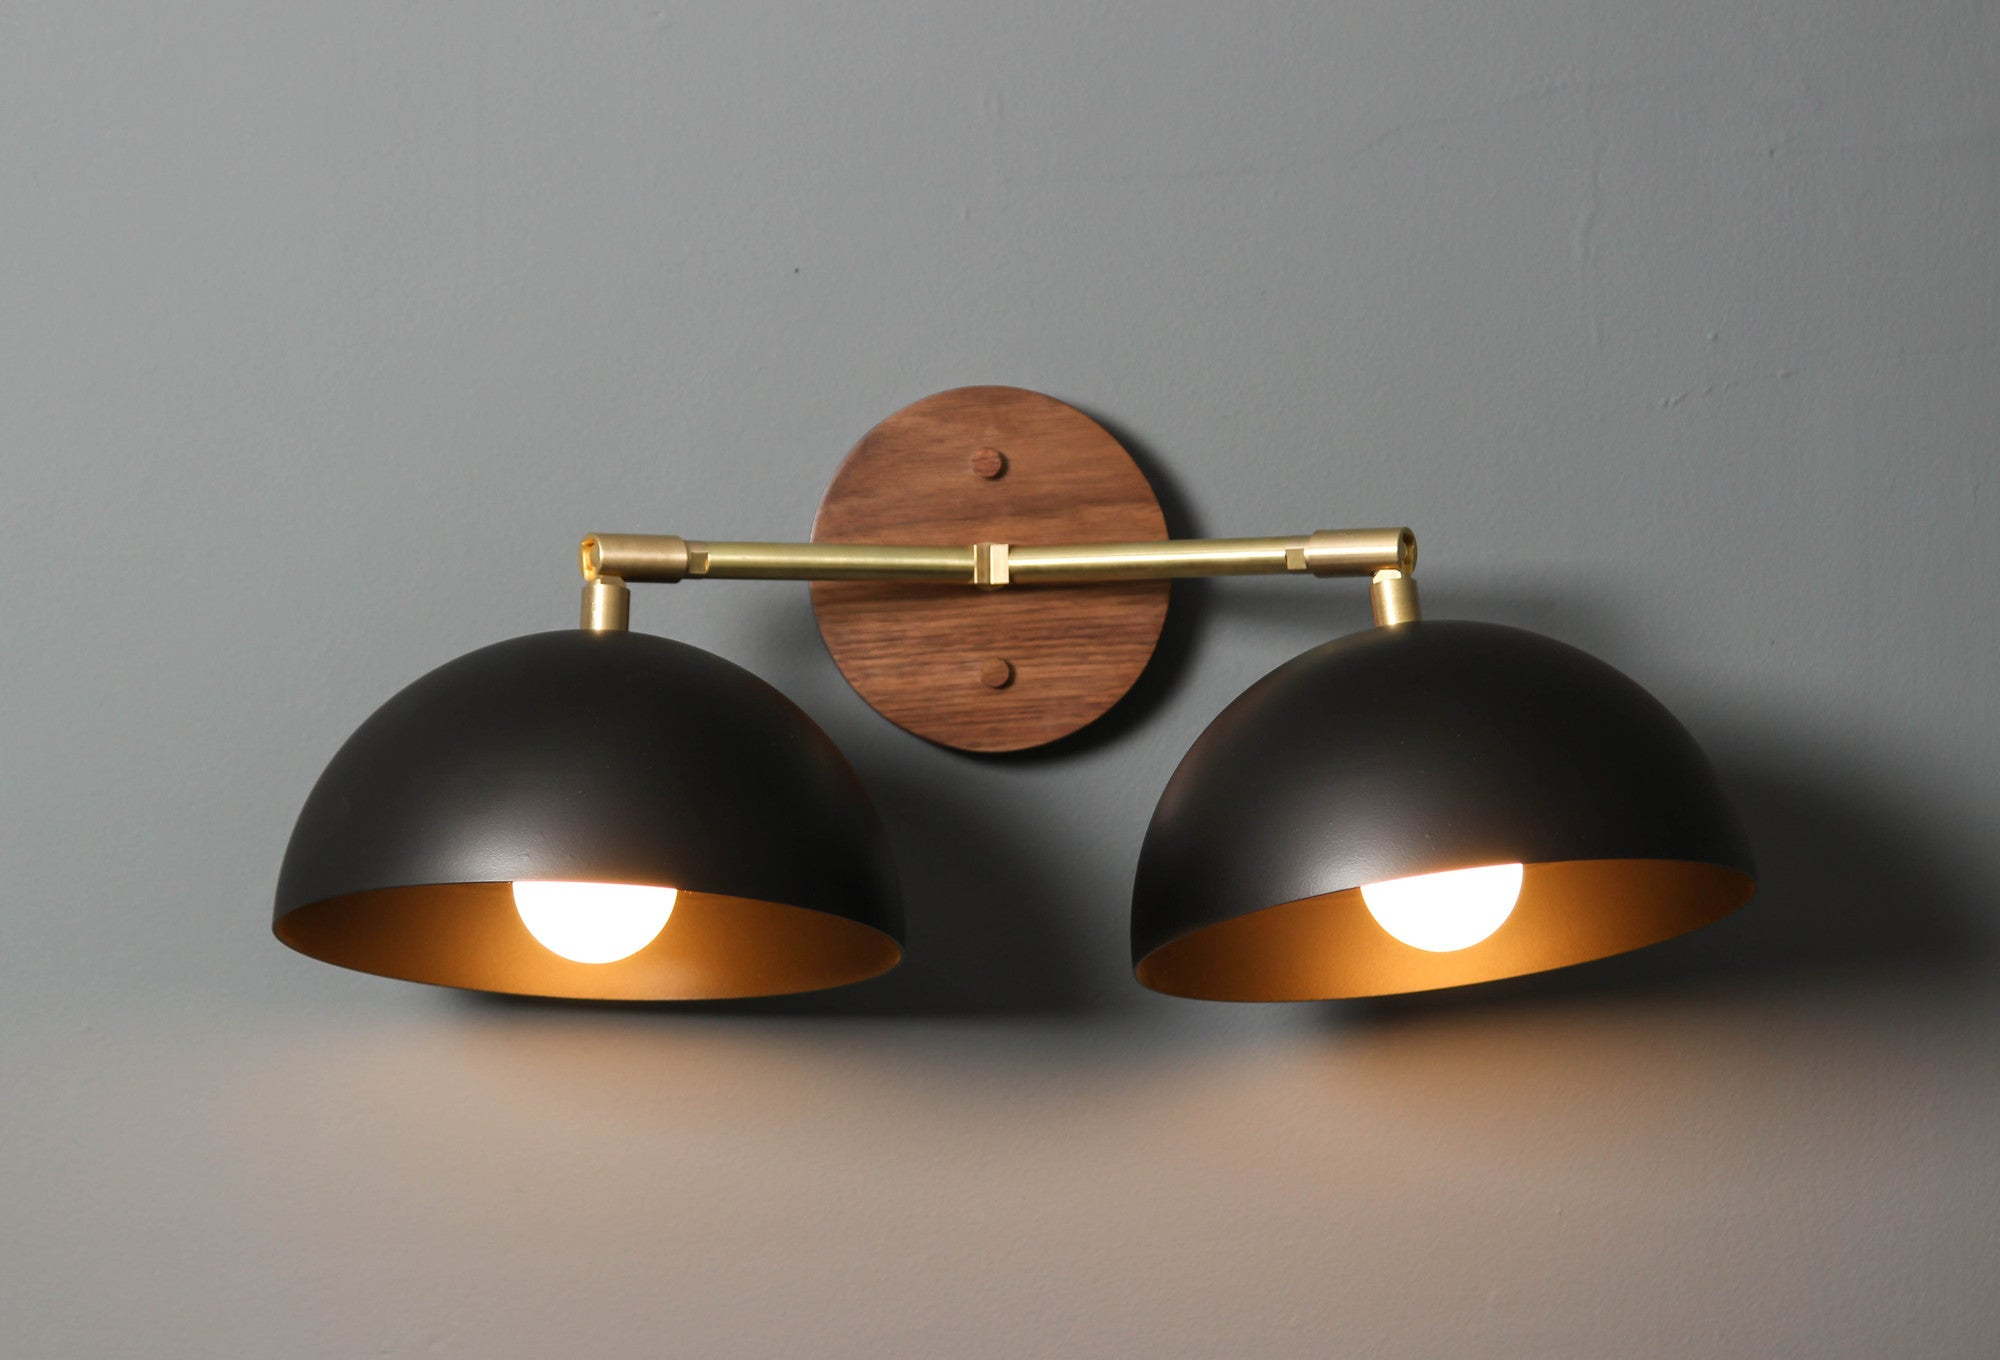 SHOP WALL SCONCES